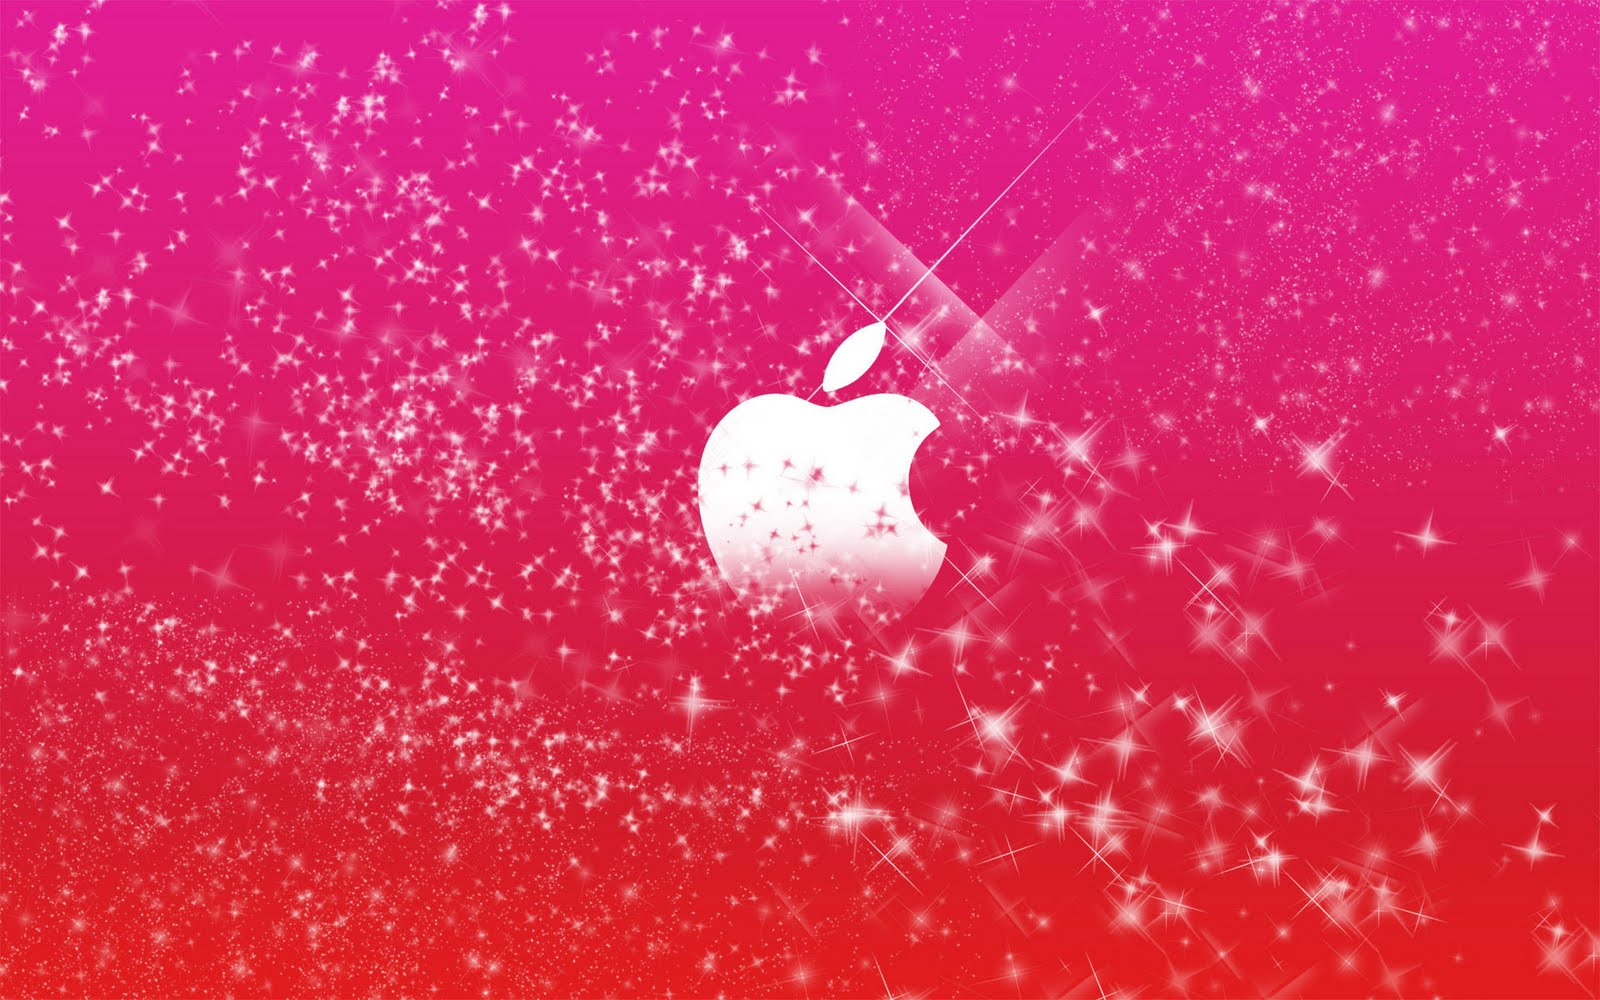 http://3.bp.blogspot.com/-Sx08ZSnPtcI/Tc8HXyxPGAI/AAAAAAAAAEY/gIkjPX2QQQ0/s1600/Pink_backgrounds_Desktop_for_Mac.jpg